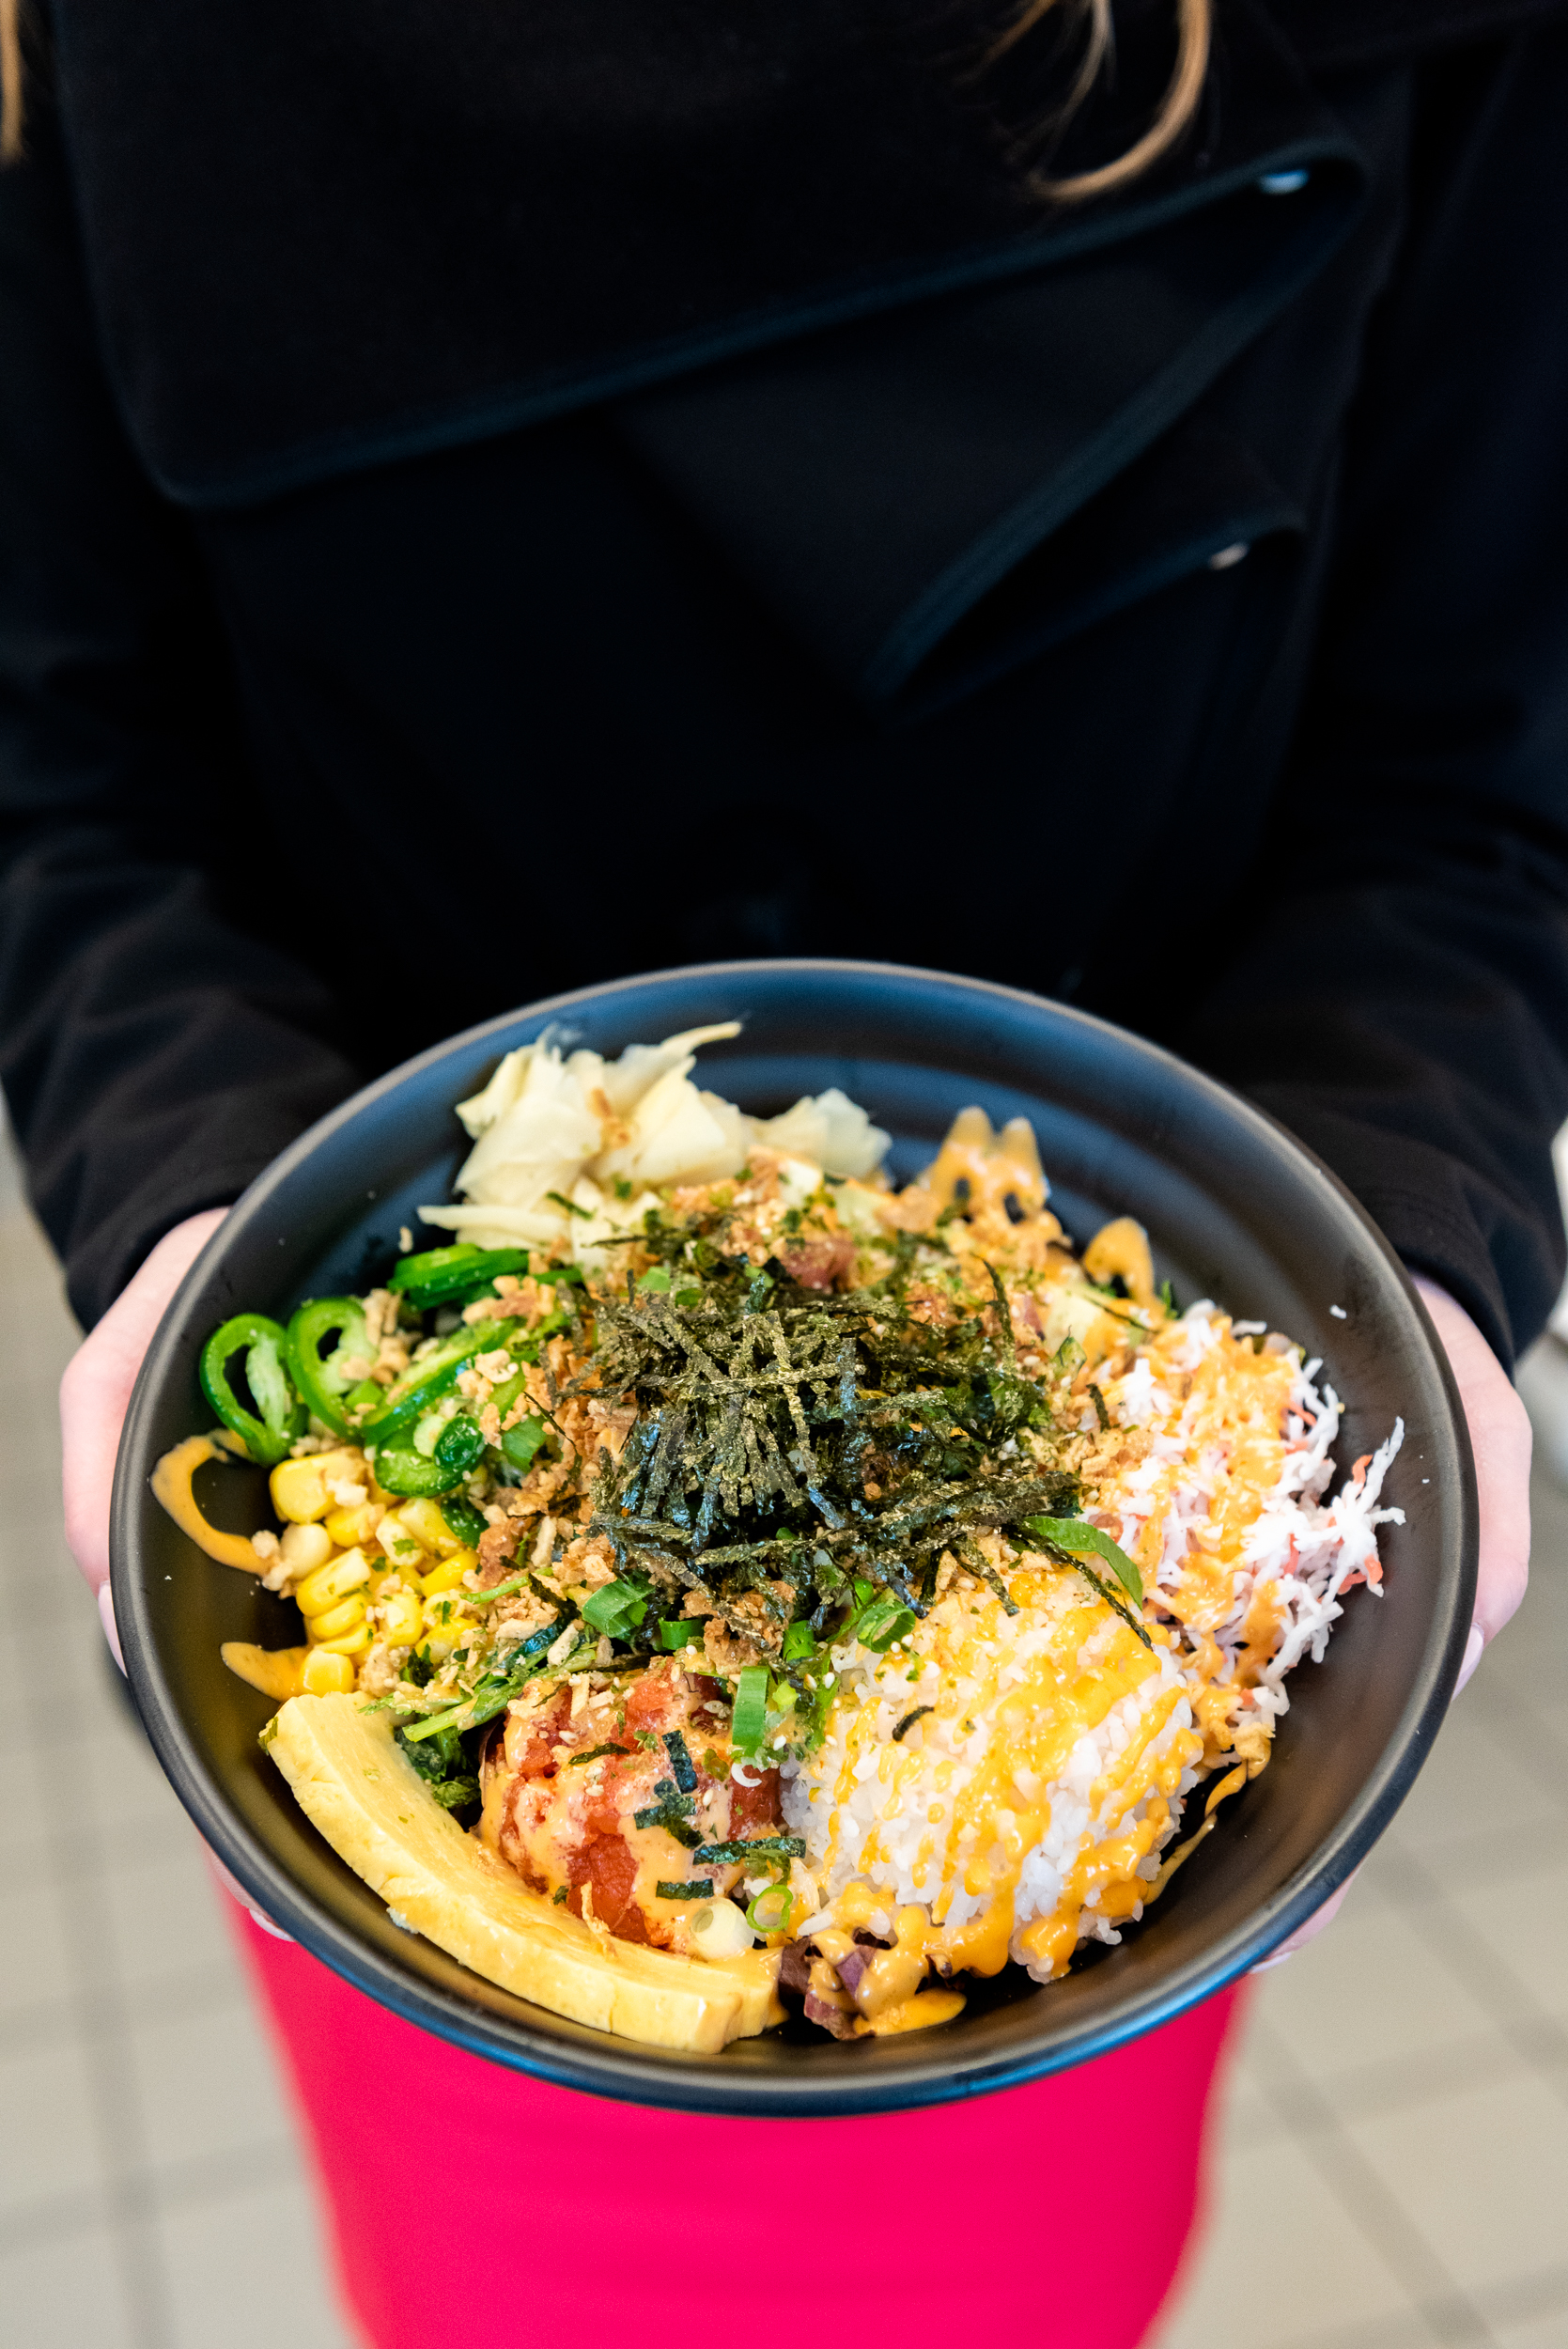 Custom poke bowl from Joy Poke bar